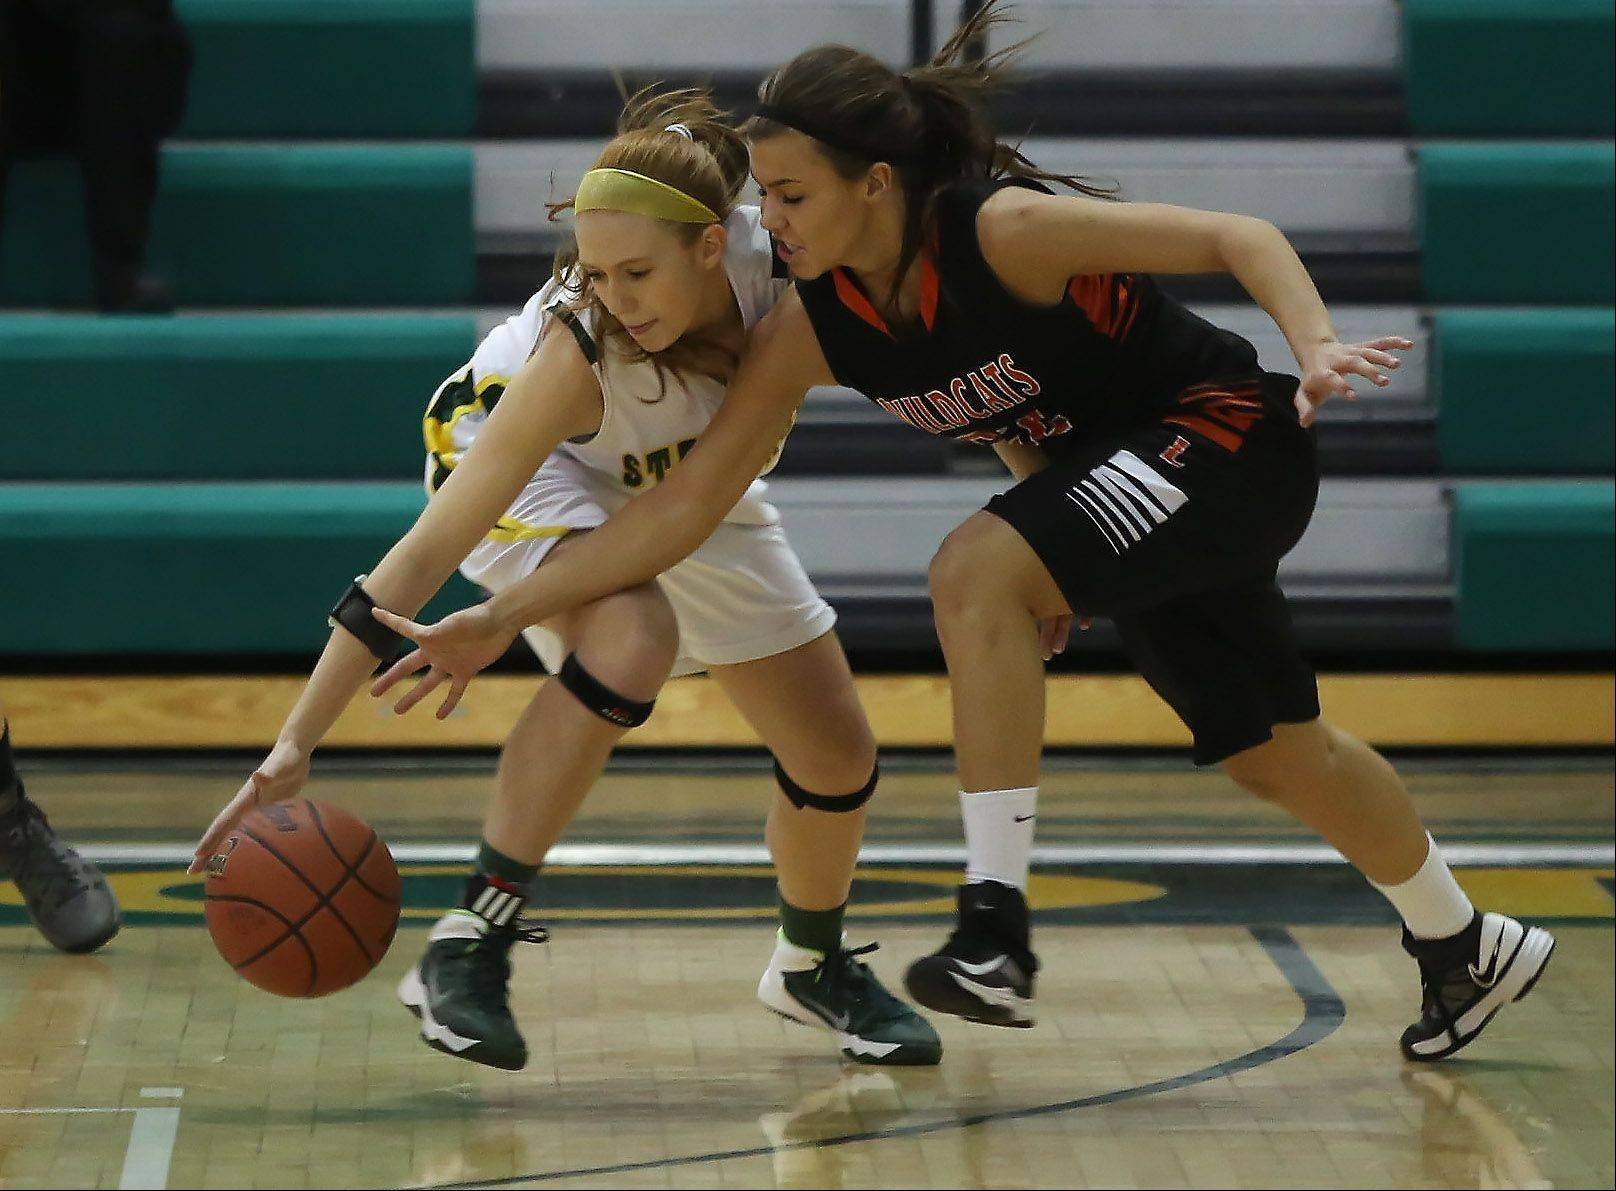 Stevenson's Jessica Burke, left, steals the ball from Libertyville's Mary Wilterdink during Thursday's game in Lincolnshire.